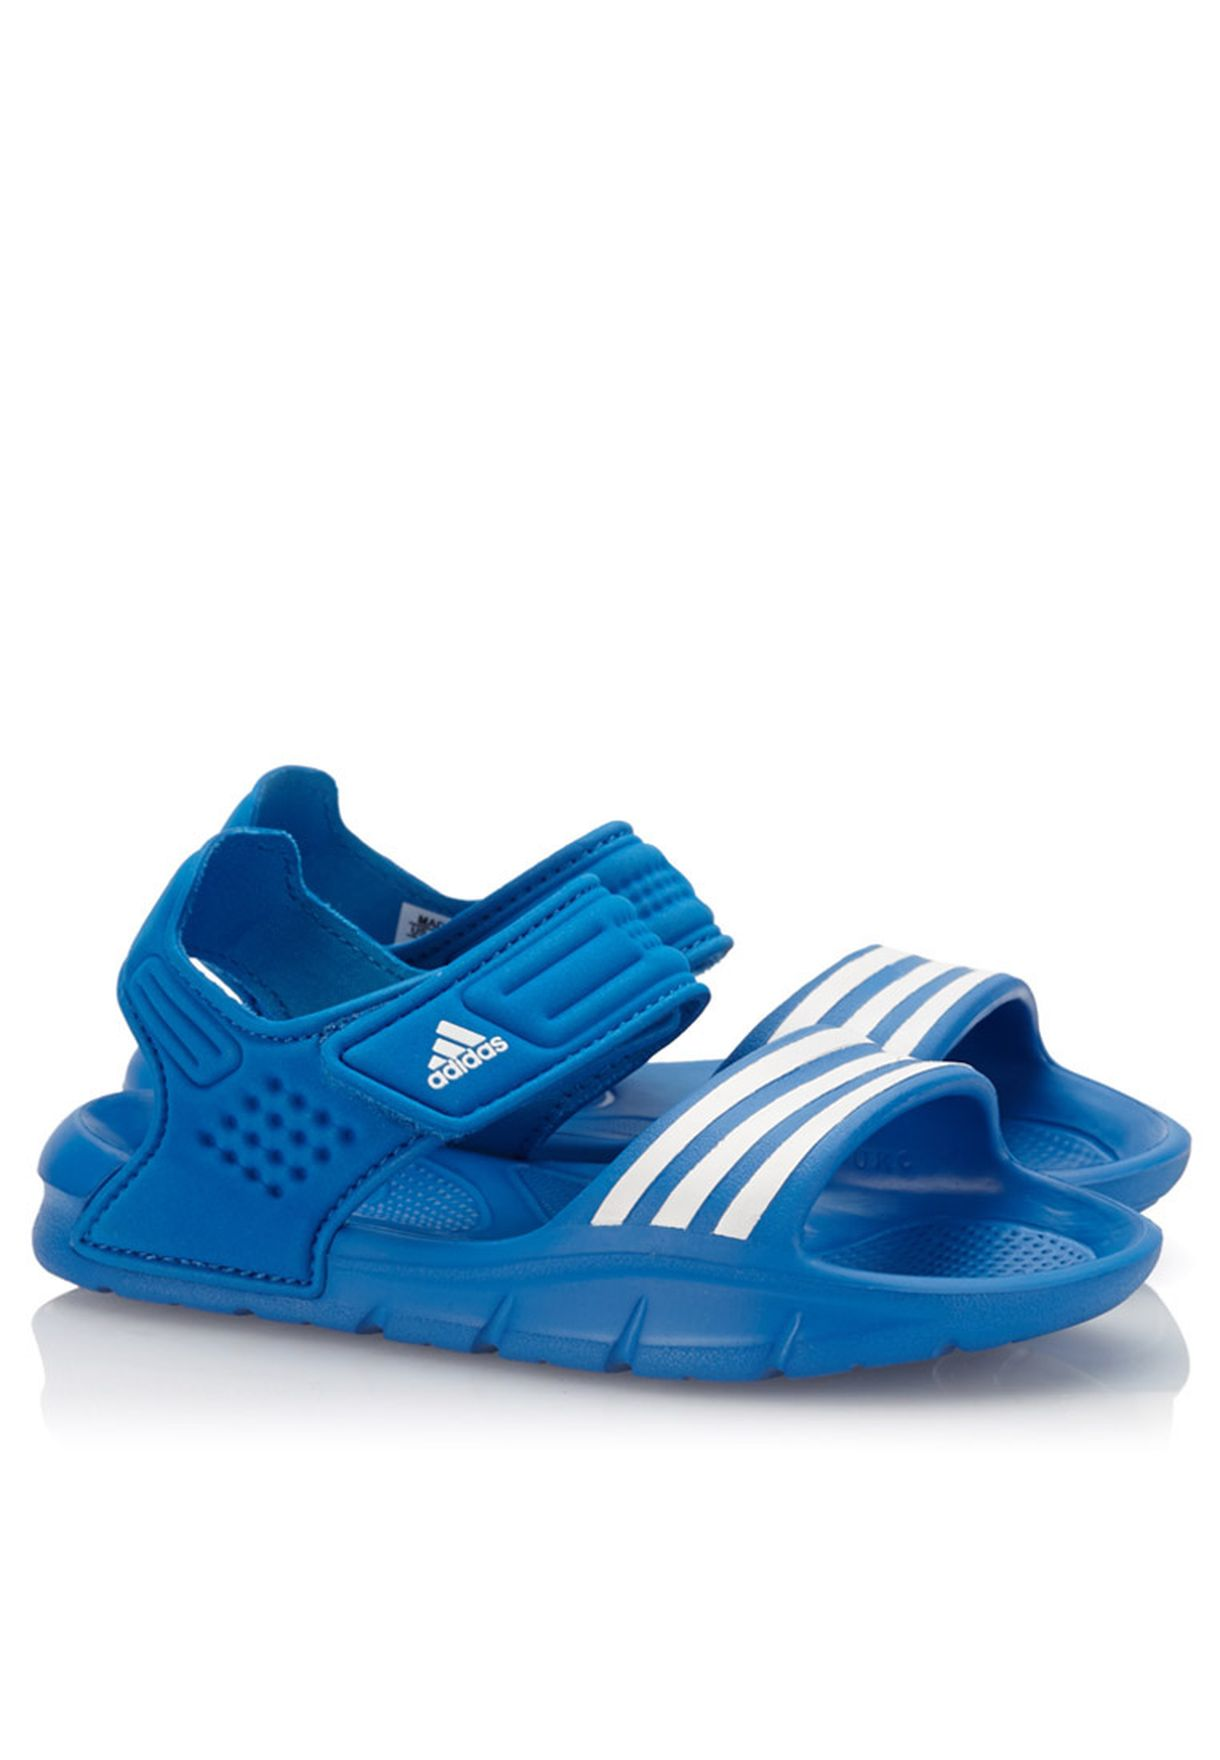 b54de5a8ba66e Shop adidas blue Akwah 8 Sandal D65919 for Kids in Oman - AD476SH21NHE